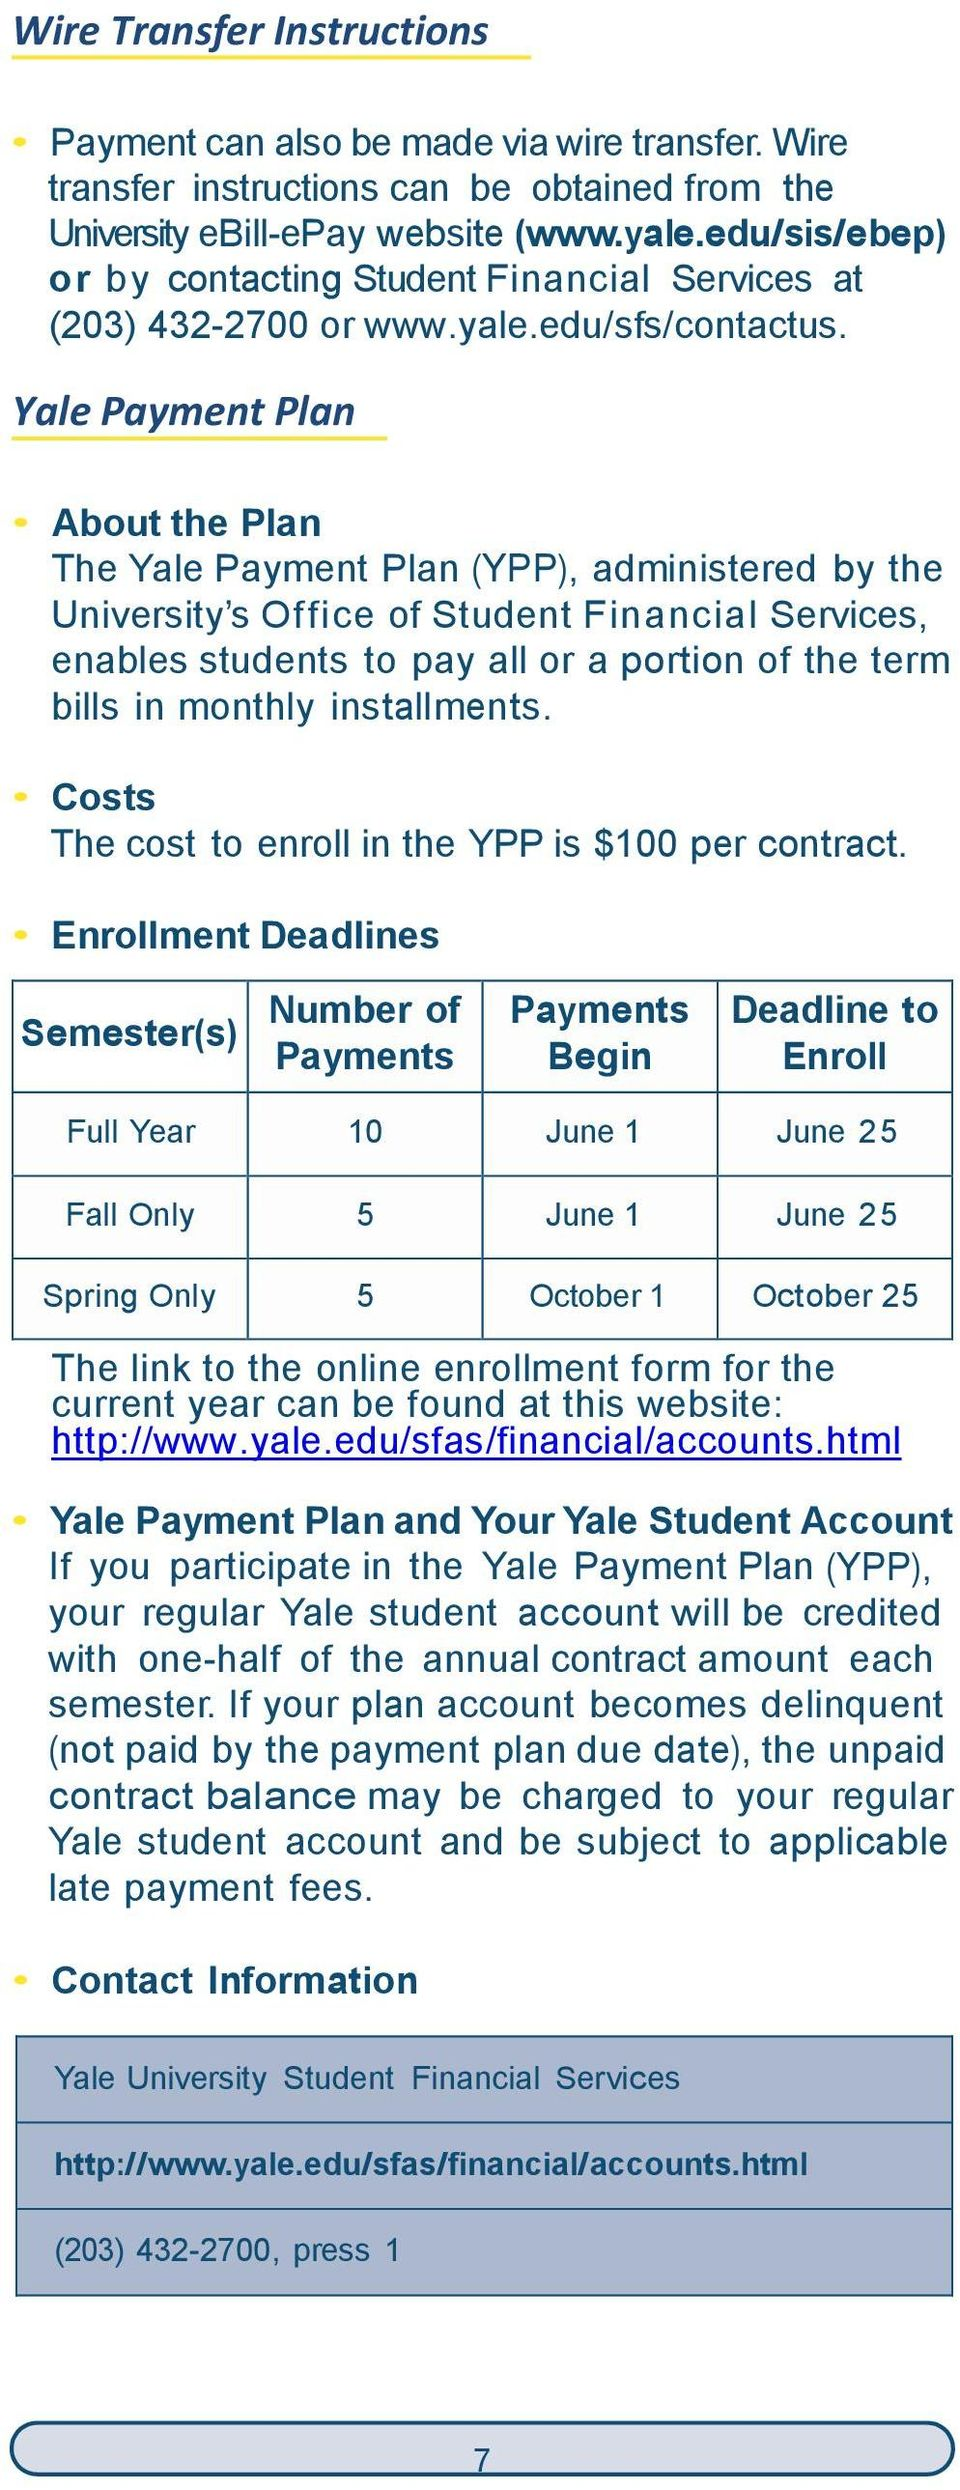 Yale Payment Plan About the Plan The Yale Payment Plan (YPP), administered by the University s Office of Student Financial Services, enables students to pay all or a portion of the term bills in